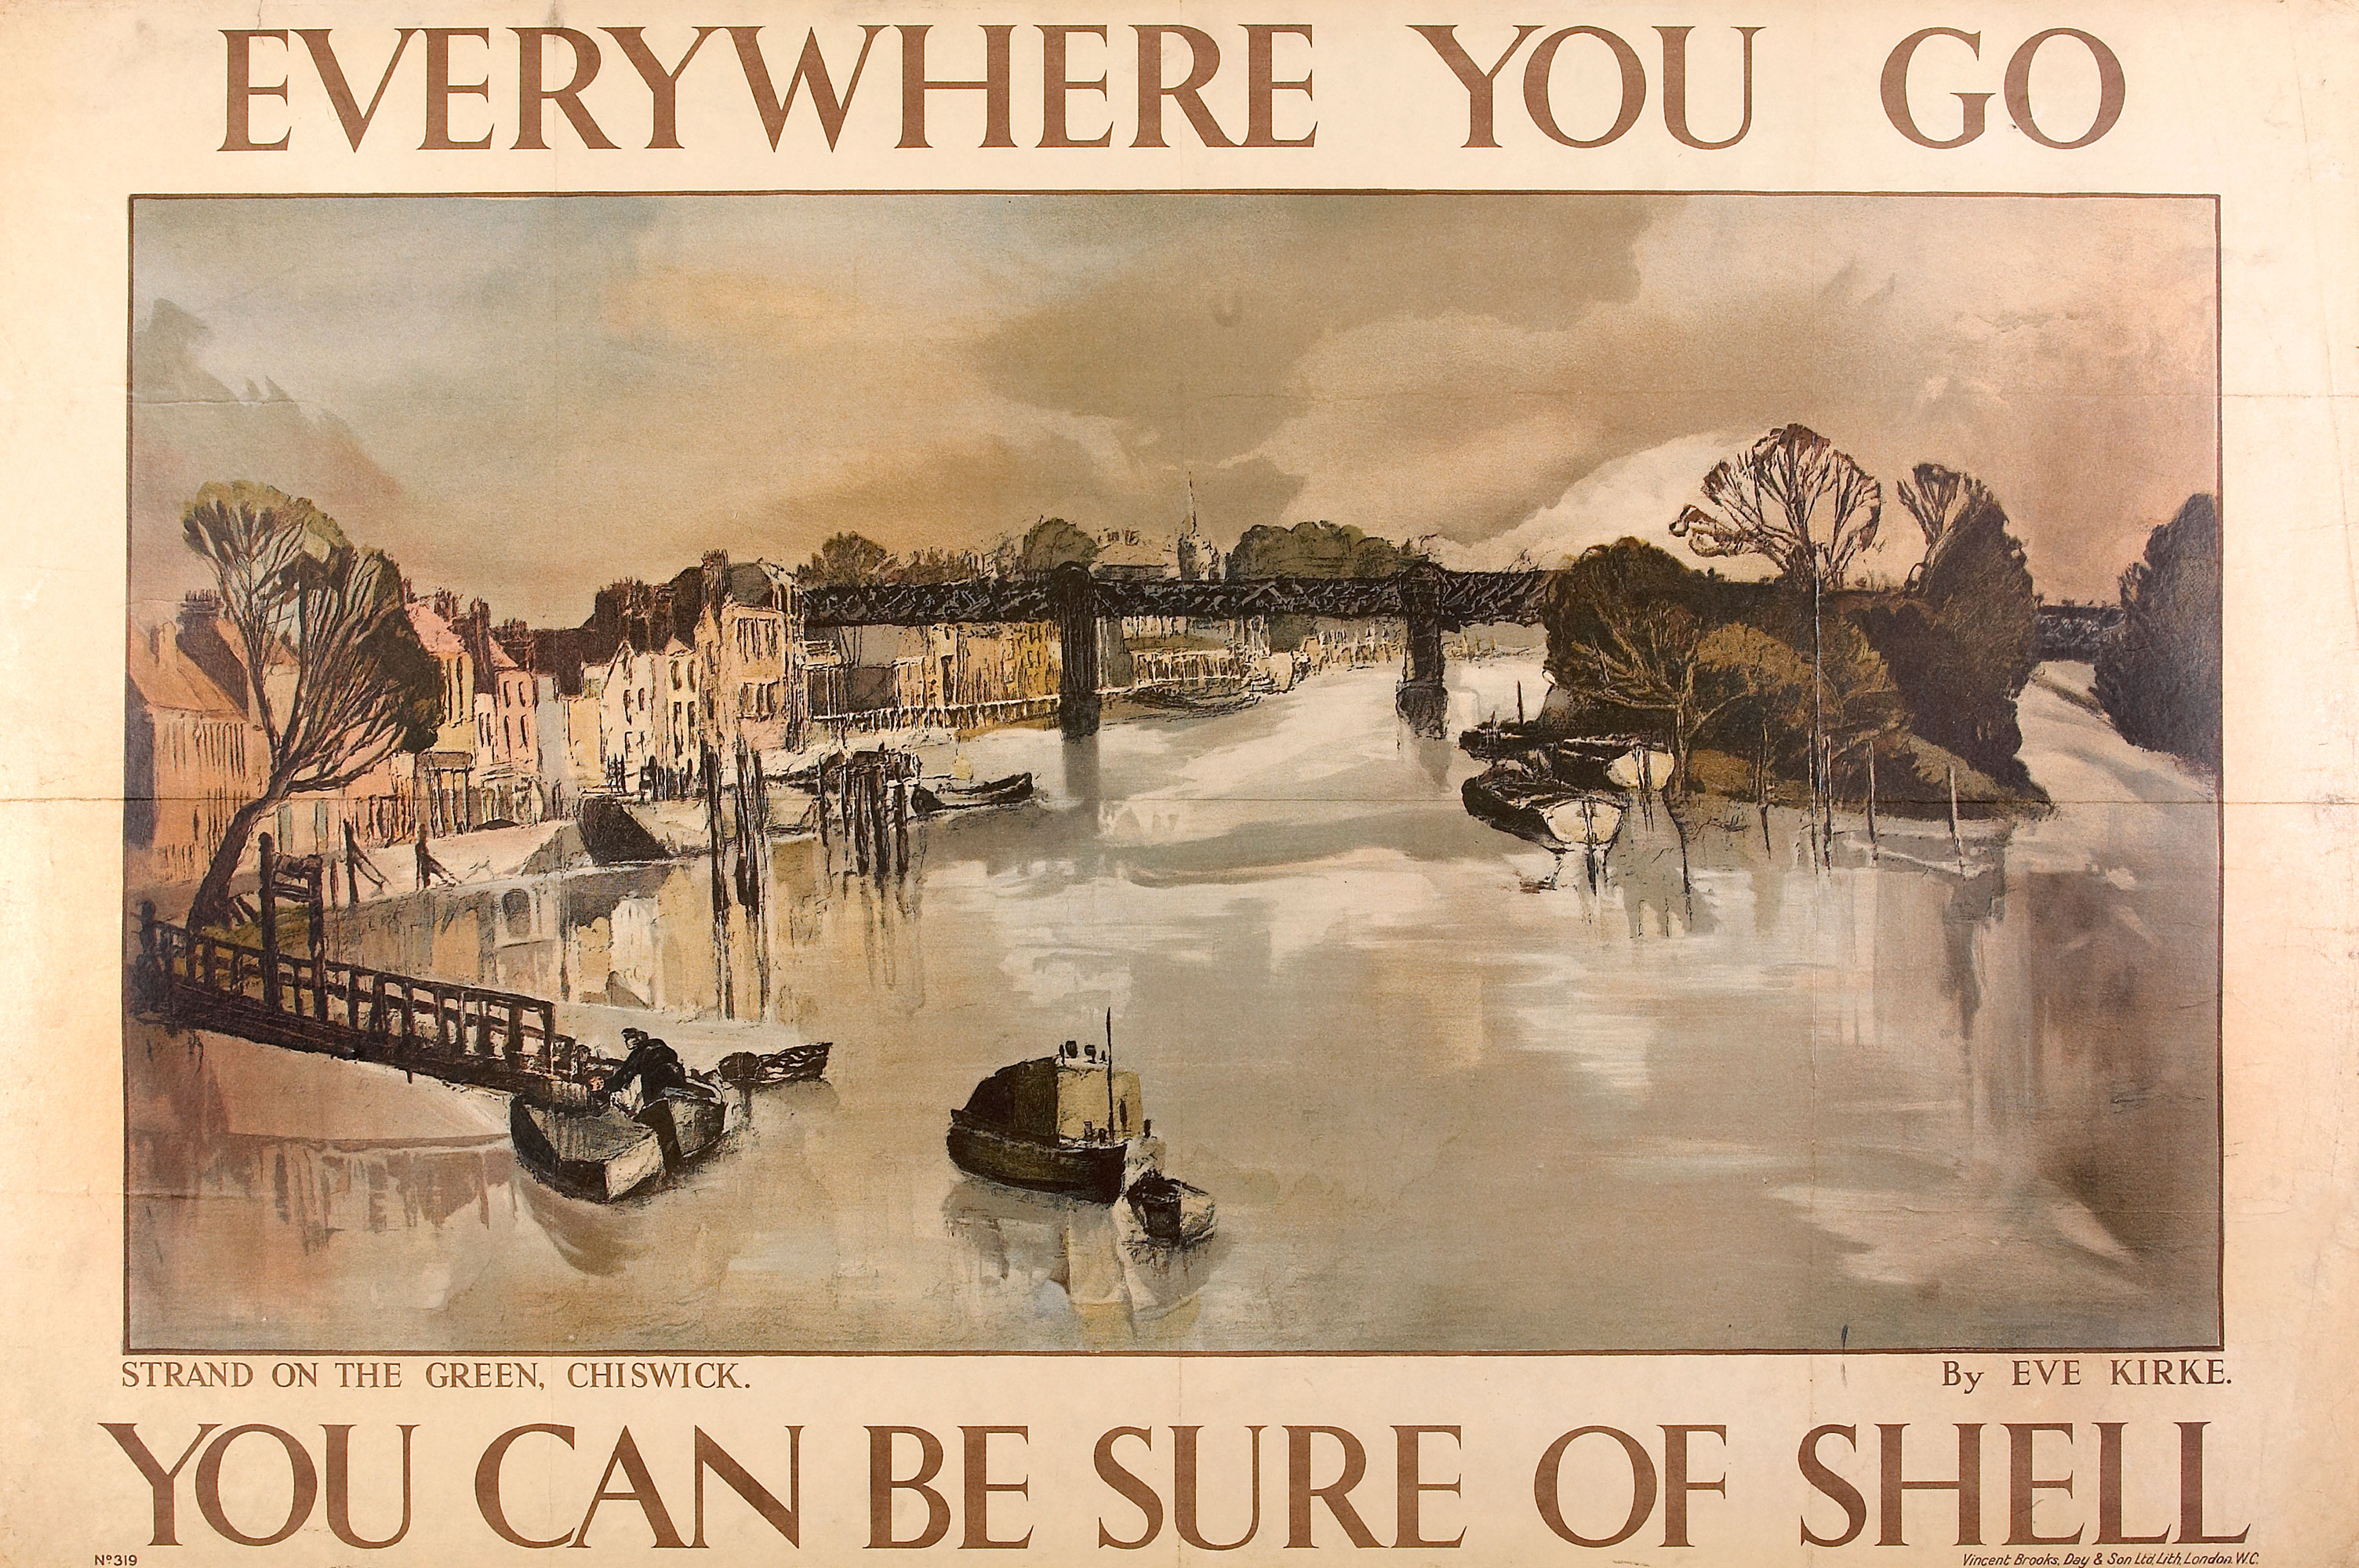 Shell poster number 319, Strand on the Green, Chiswick by Eve Kirke. Landscape painting of the River Thames, running through the Strand on the Green at Chiswick with the bridge in the background.